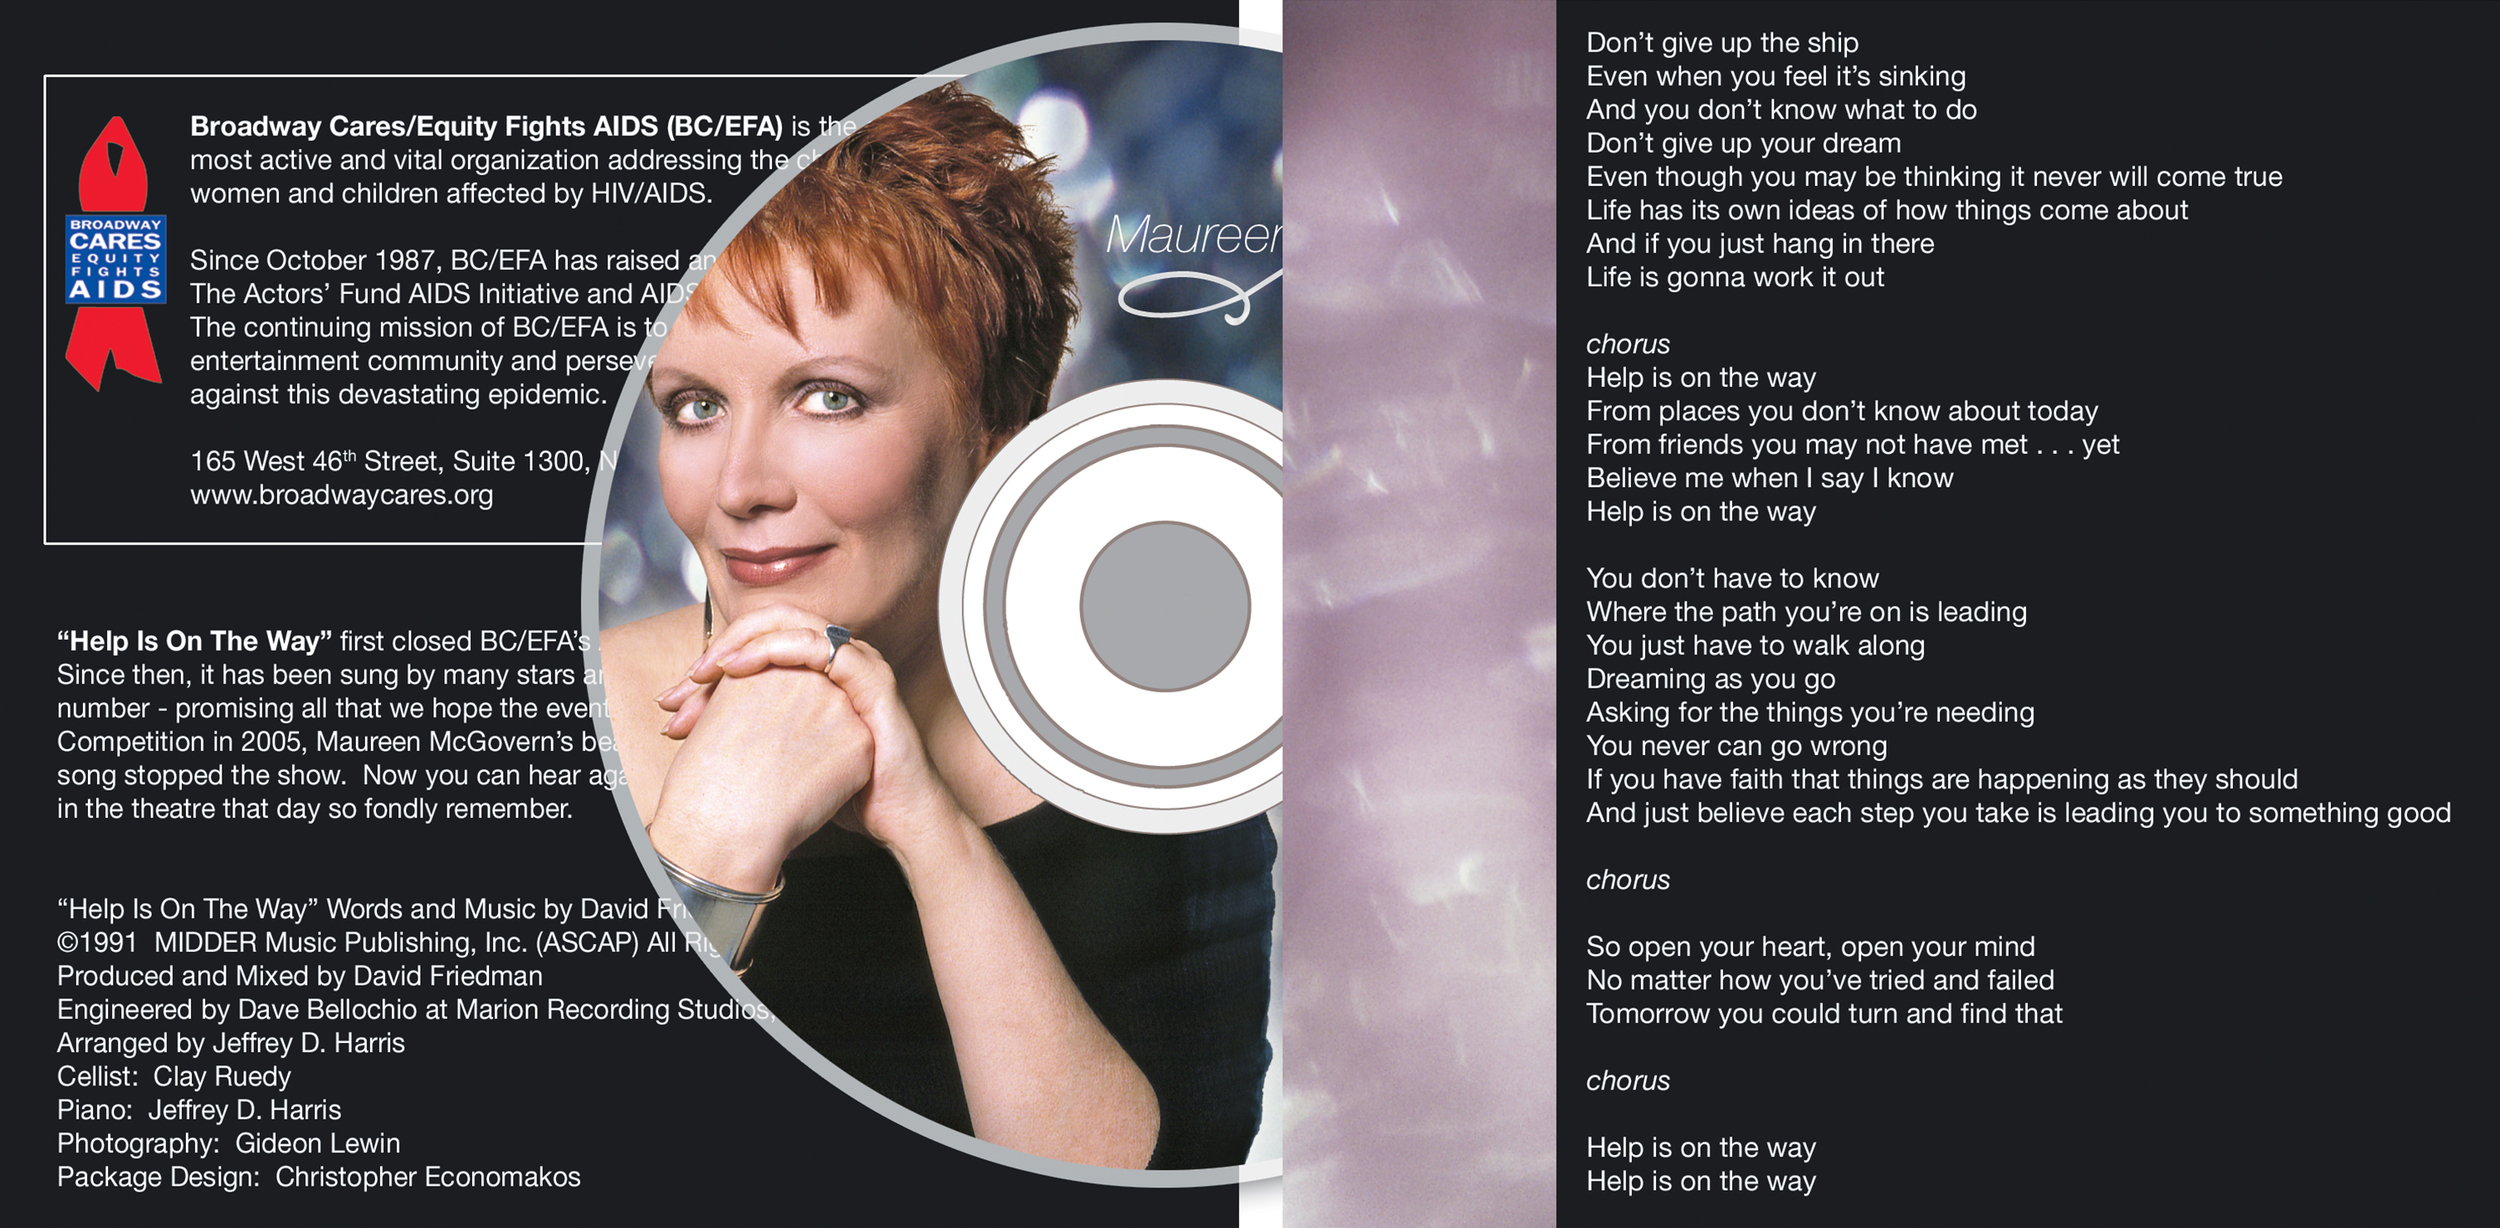 Help is on the Way CD Cover - Interior